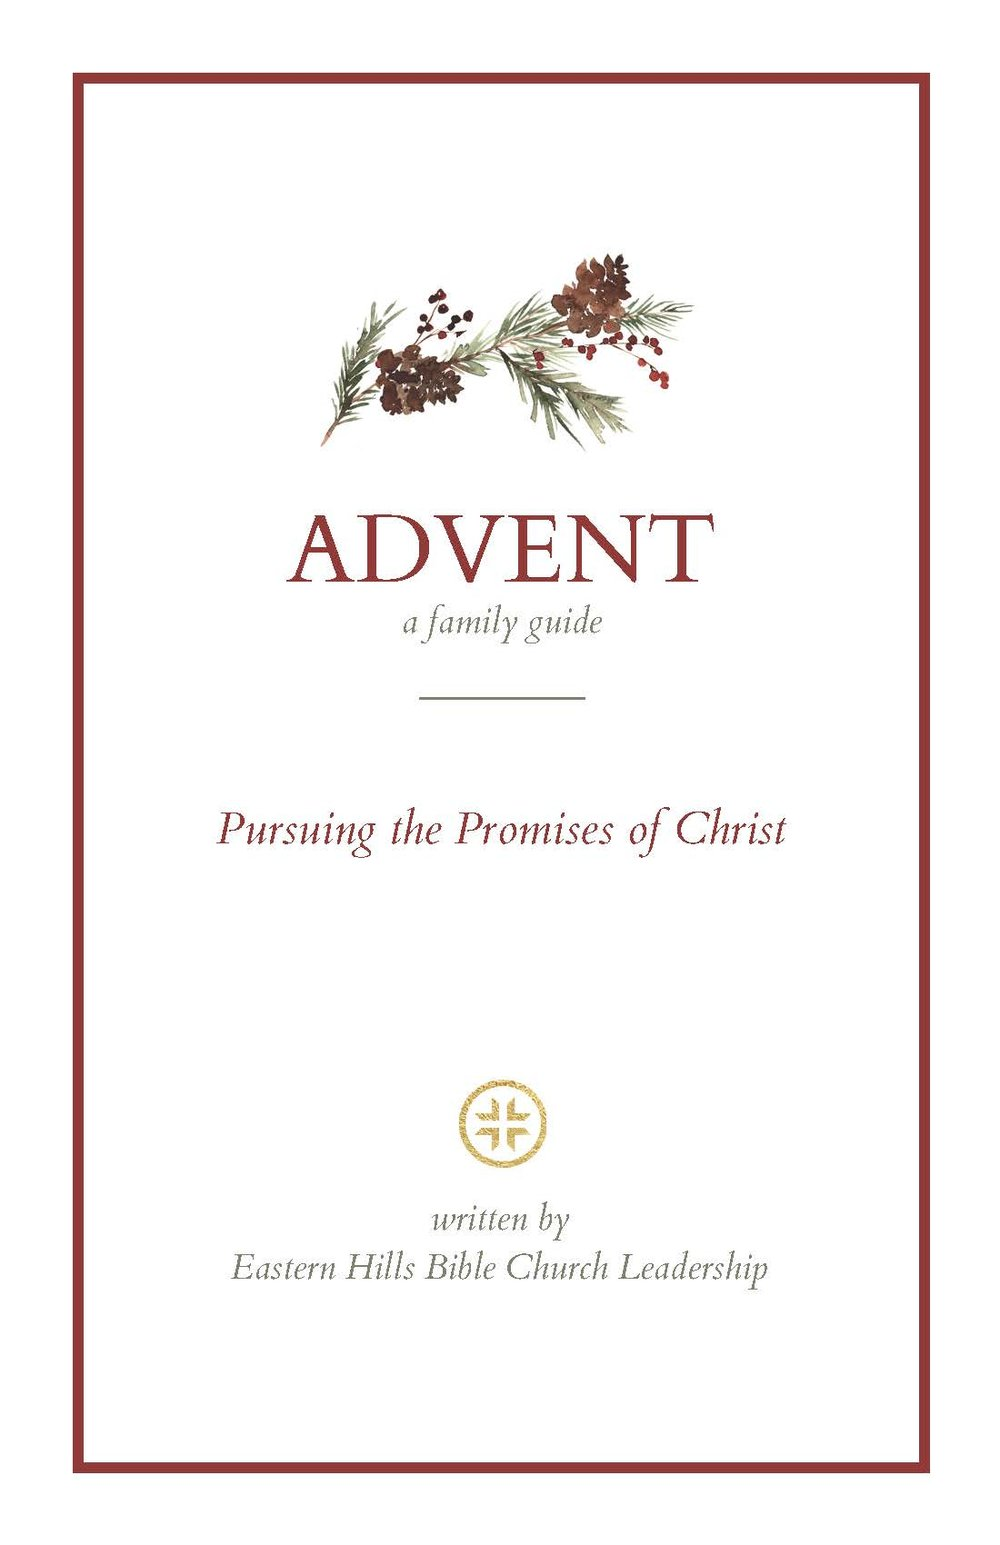 Final Advent Guide - for digital publication_Page_01.jpg